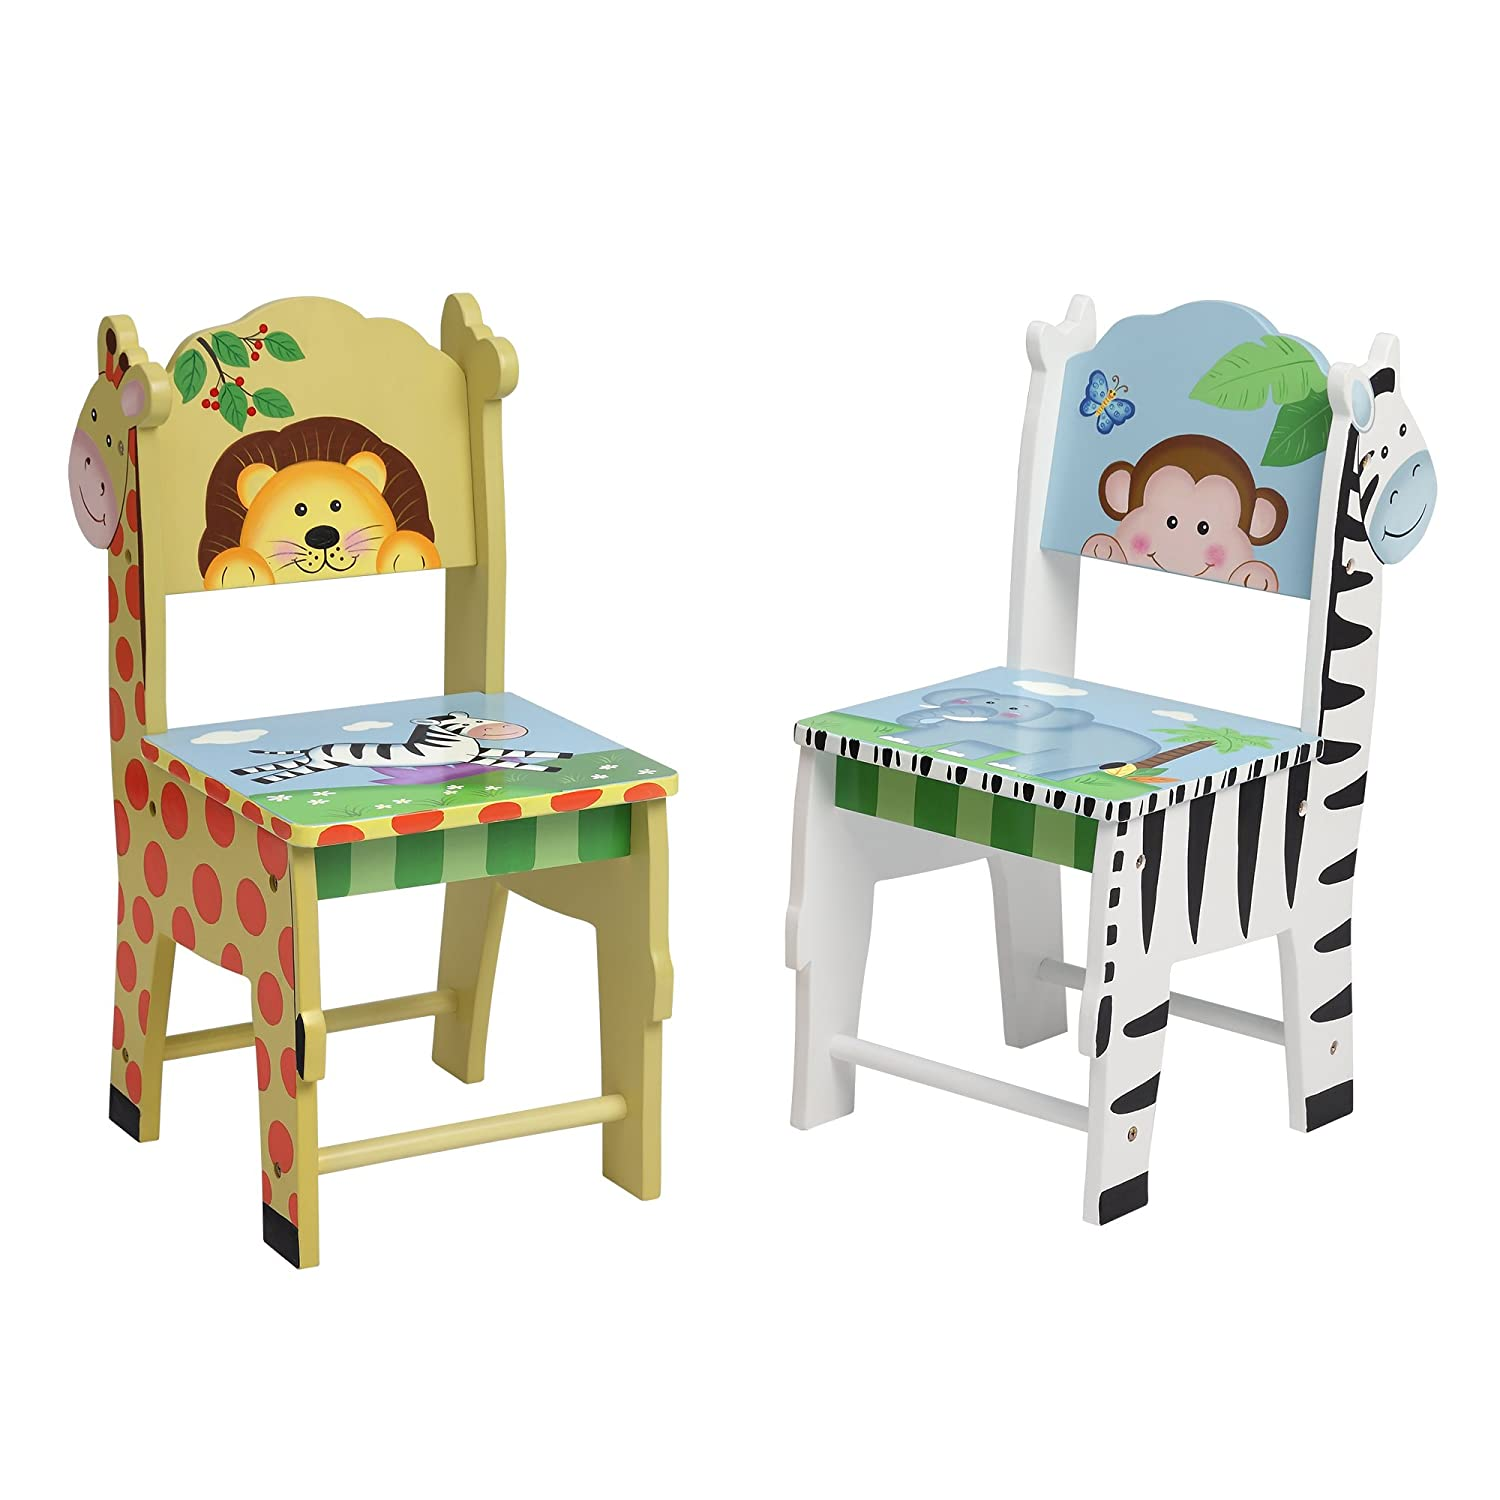 Fantasy Fields Chairs Set of 2 Chairs, White/Yello/Multi-Color